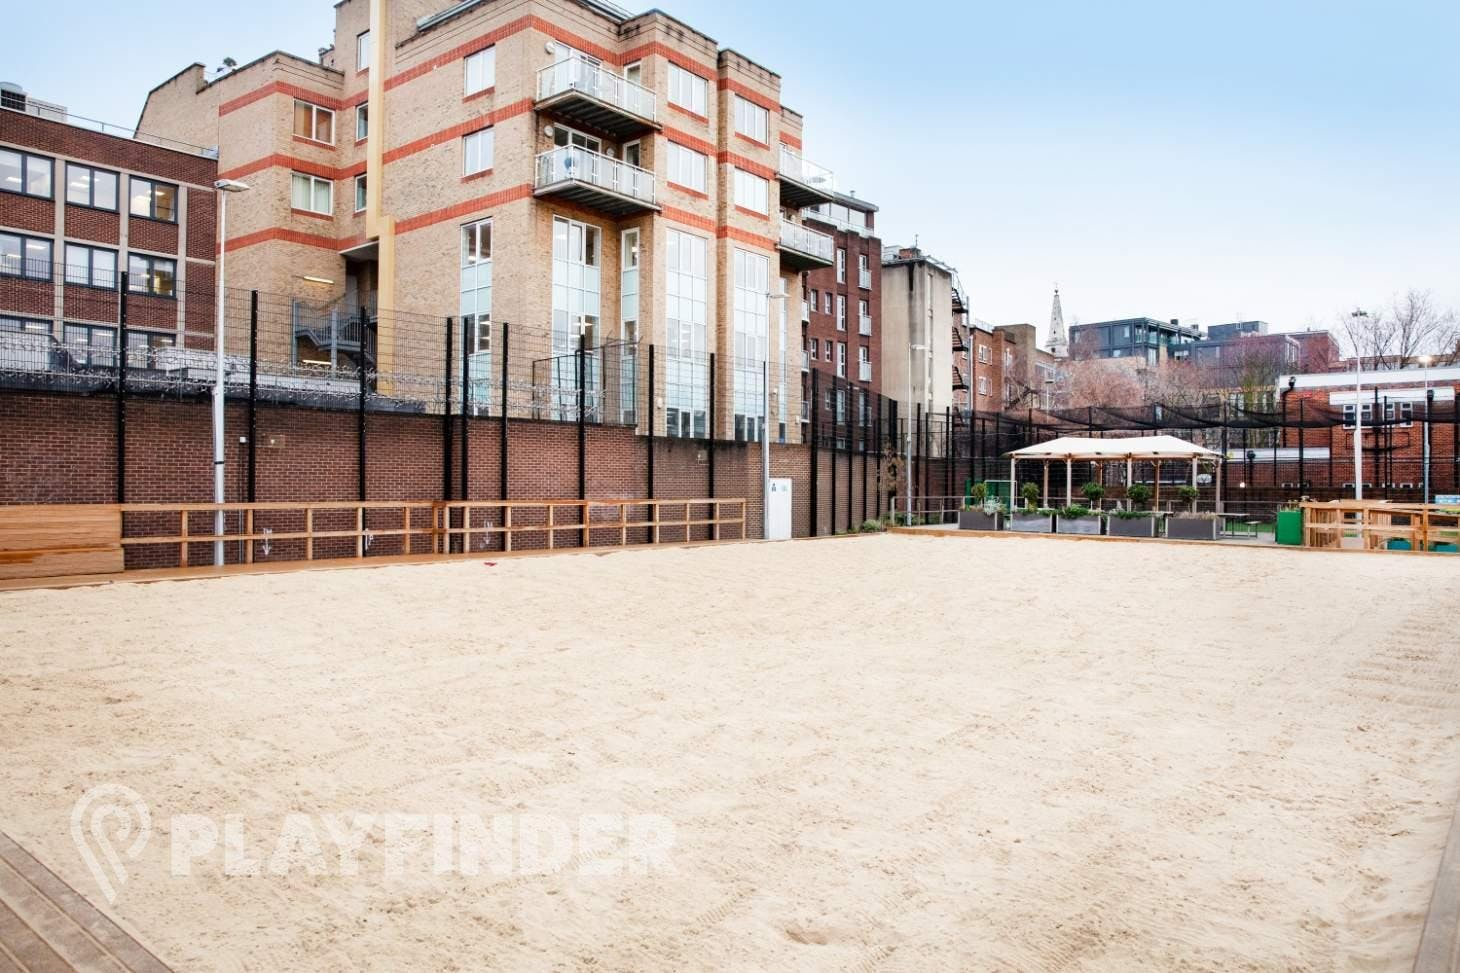 Marlborough Sports Garden, London Bridge - 5aside.org Court | Sand (beach) volleyball court